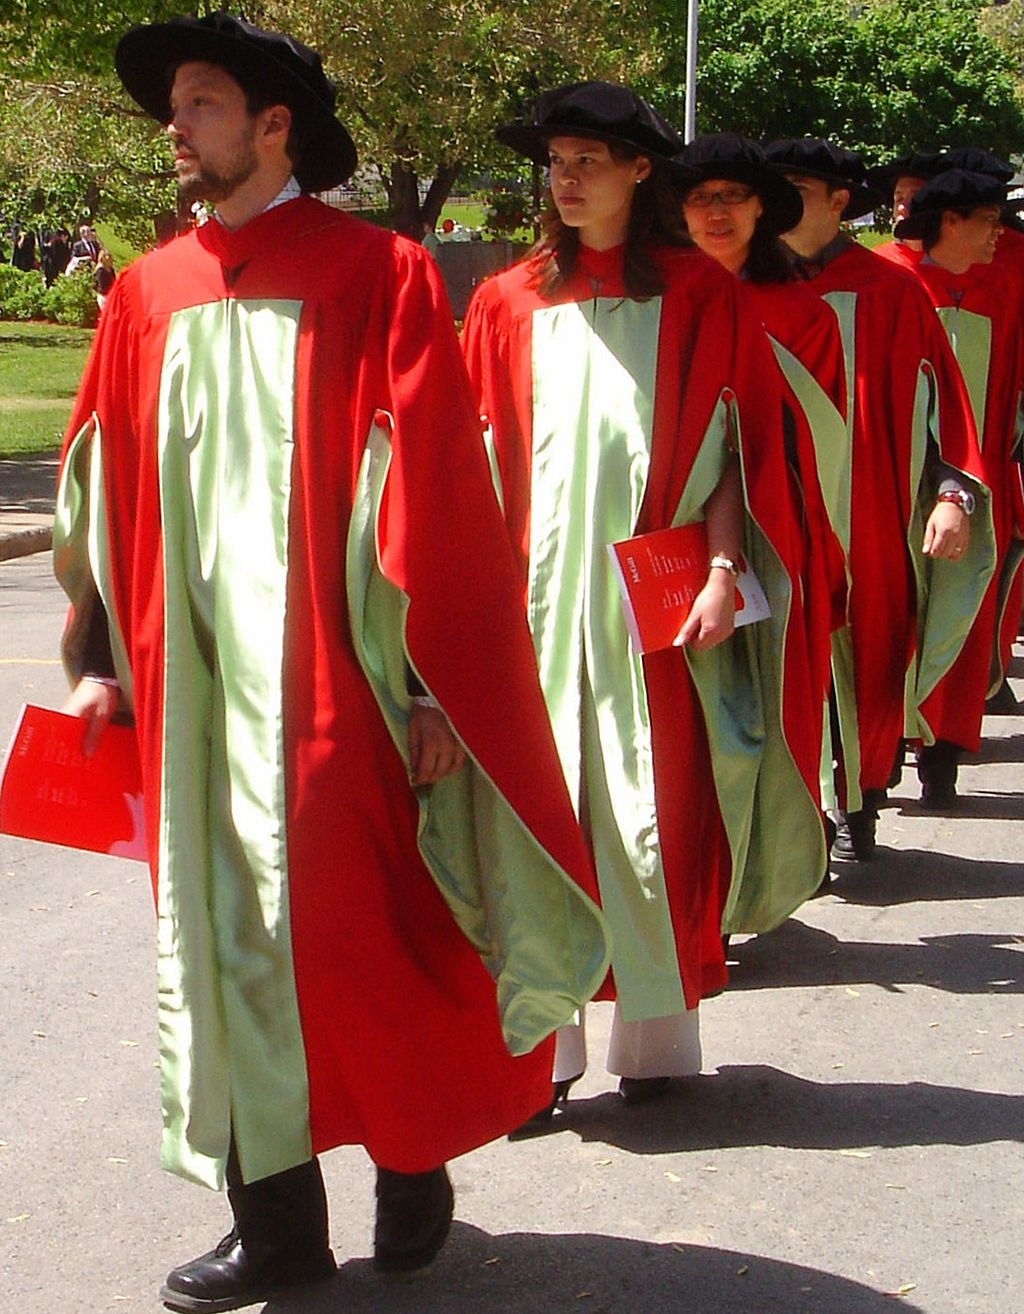 10 Coolest University Graduation Gowns Of Famous Universities